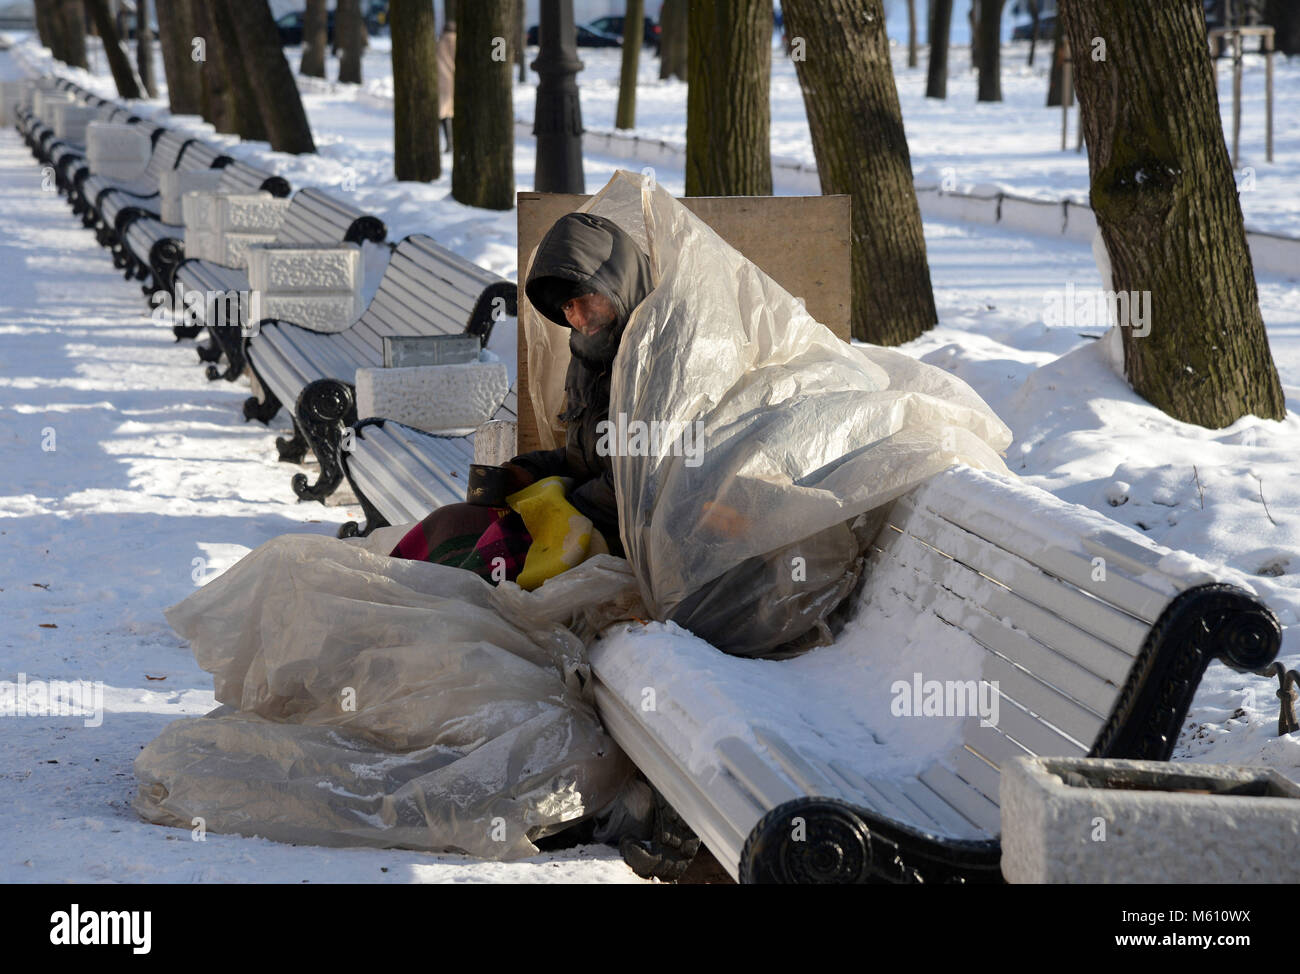 St. Petersburg, Russia. 27th Feb, 2018. Russia, St. Petersburg, February 27, 2018. Homeless Terminator told how - Stock Image